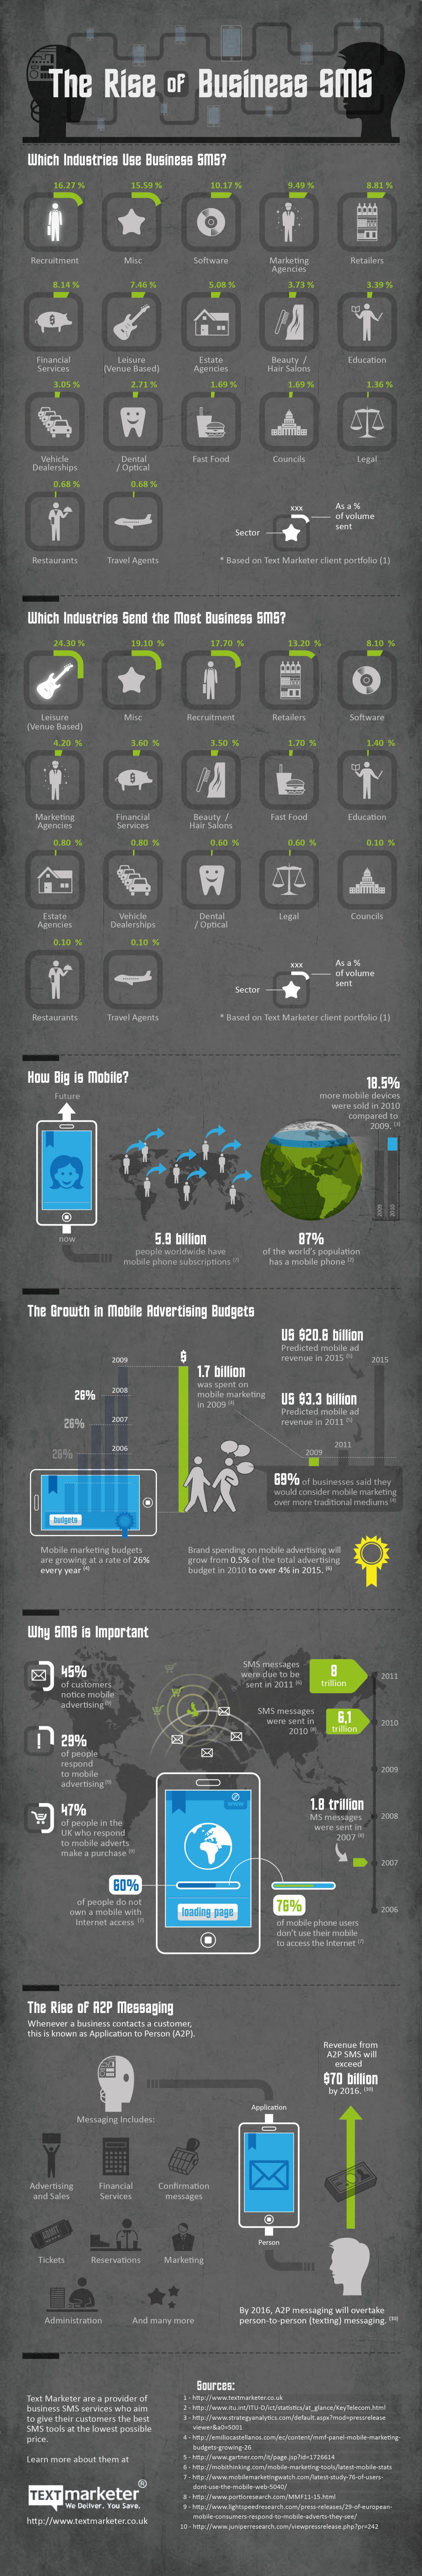 Rise of Business SMS